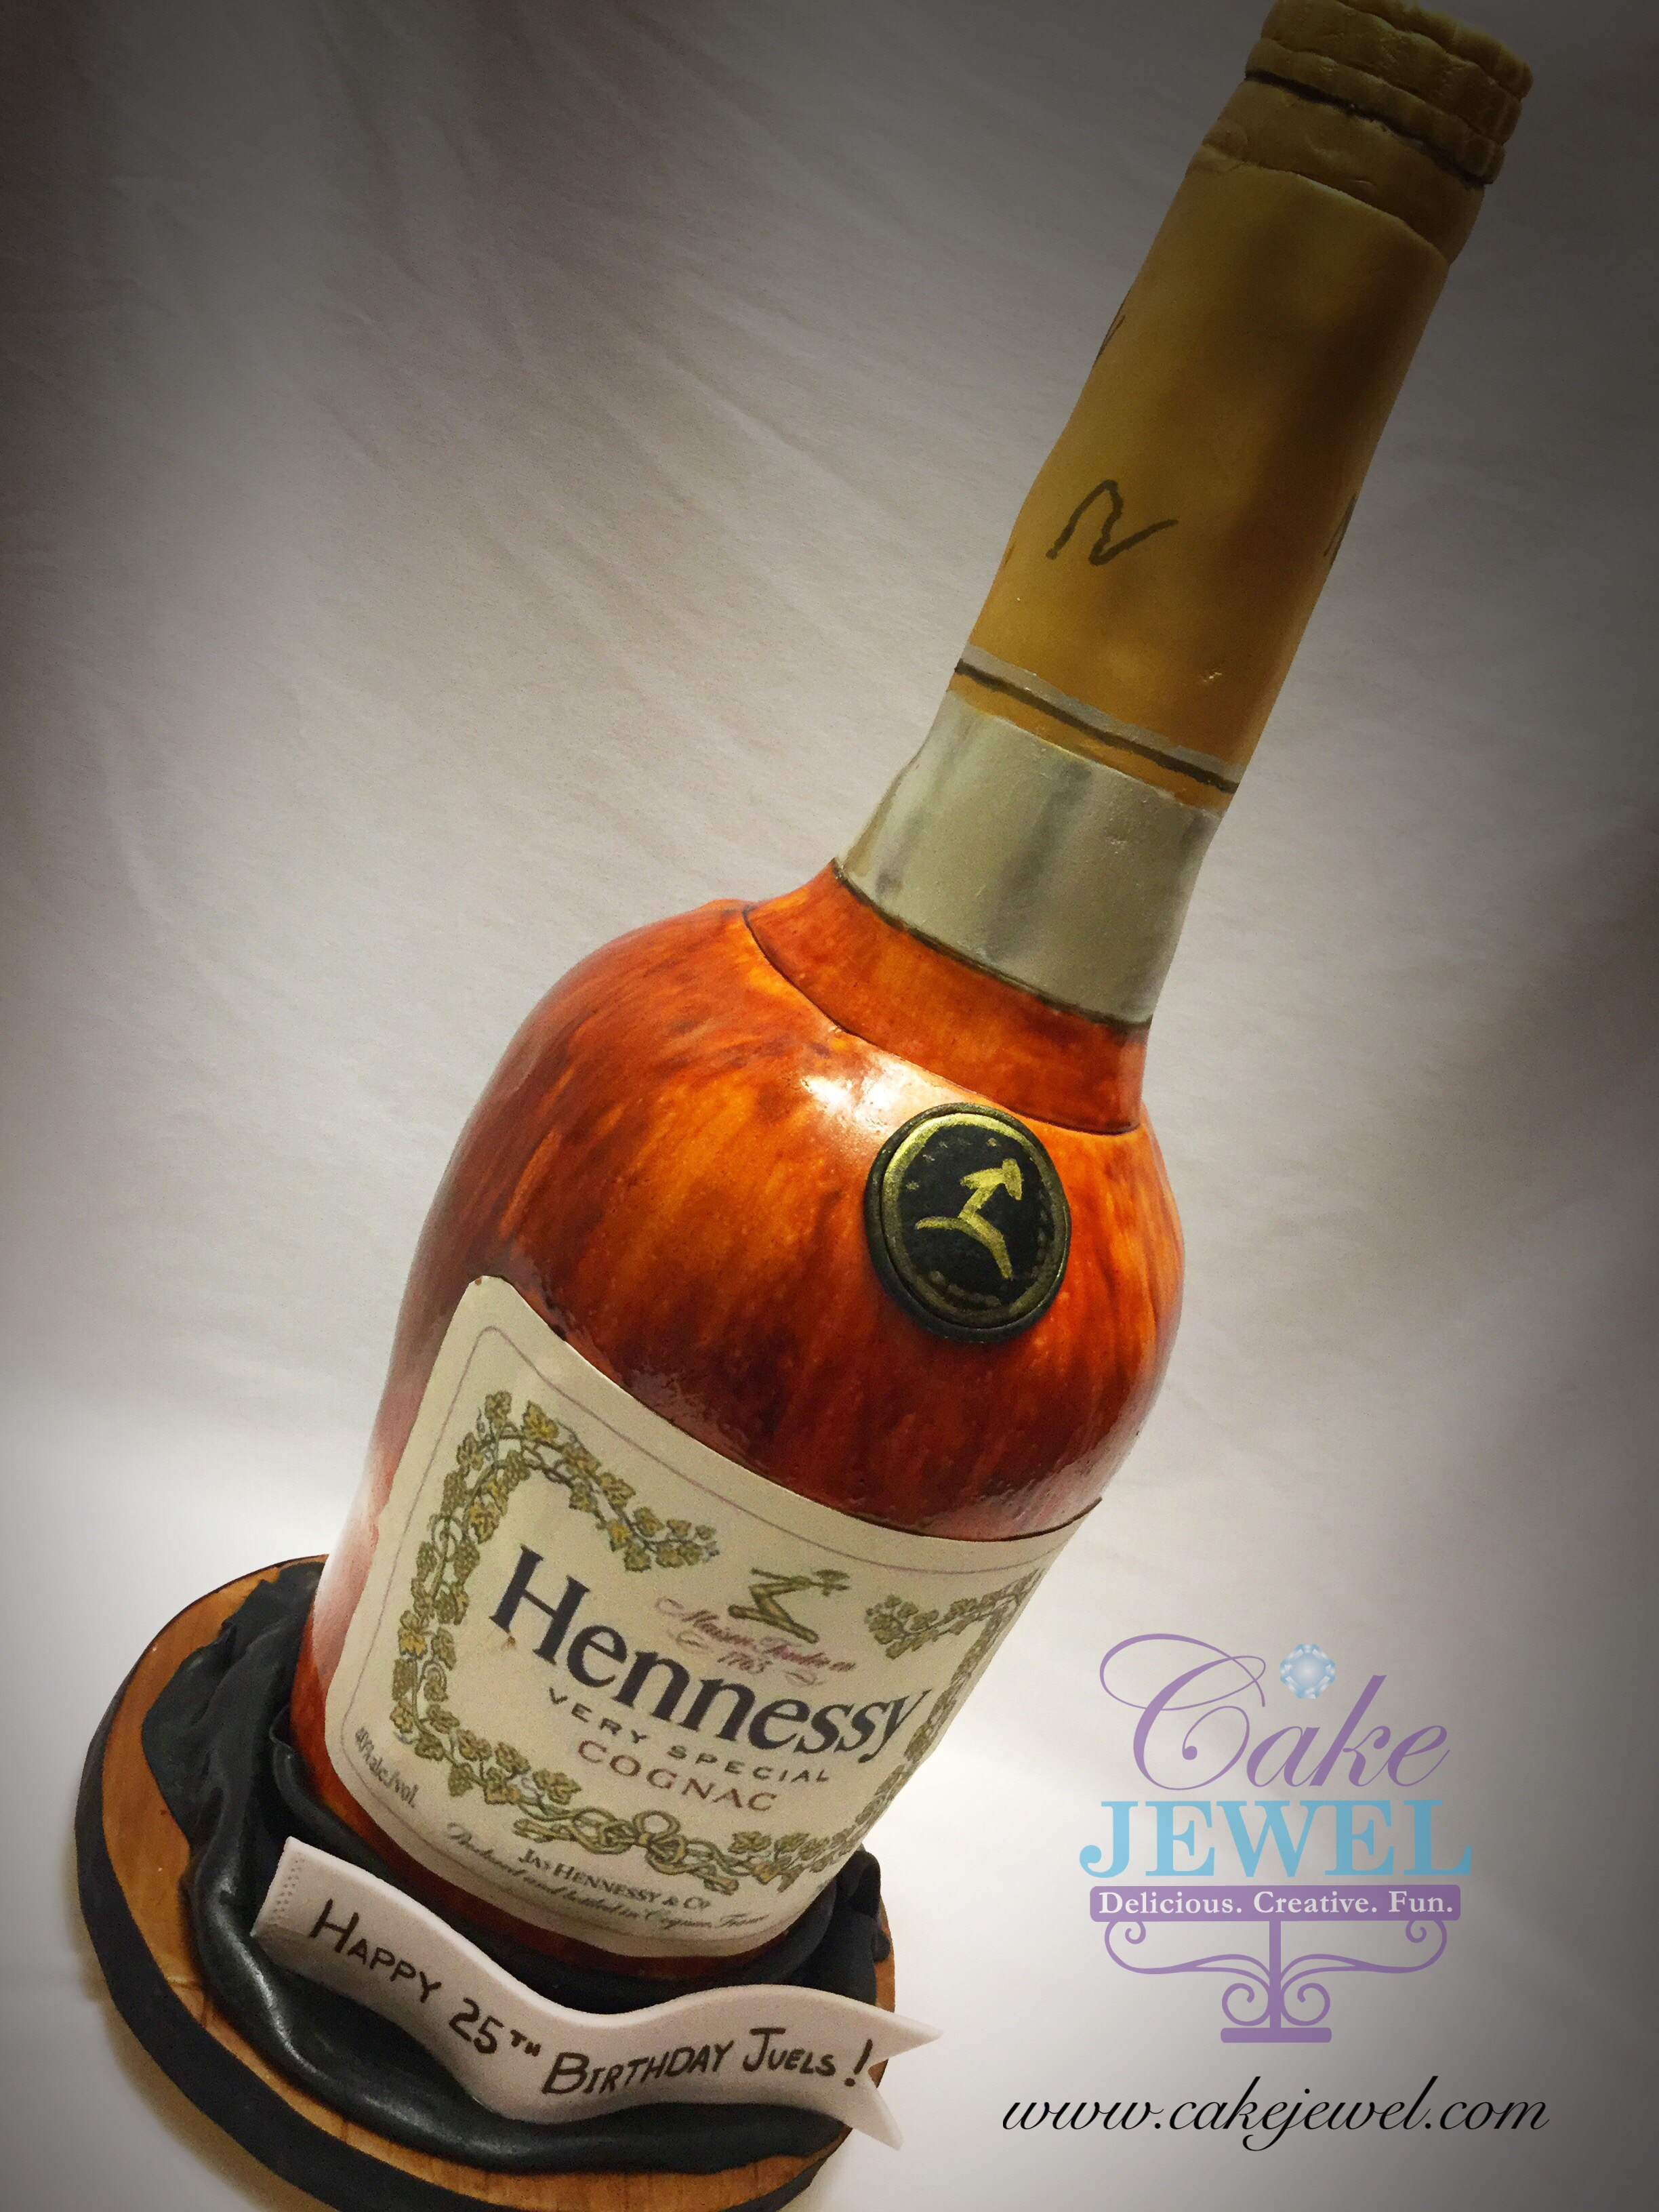 3D Hennessy bottle novelty cake